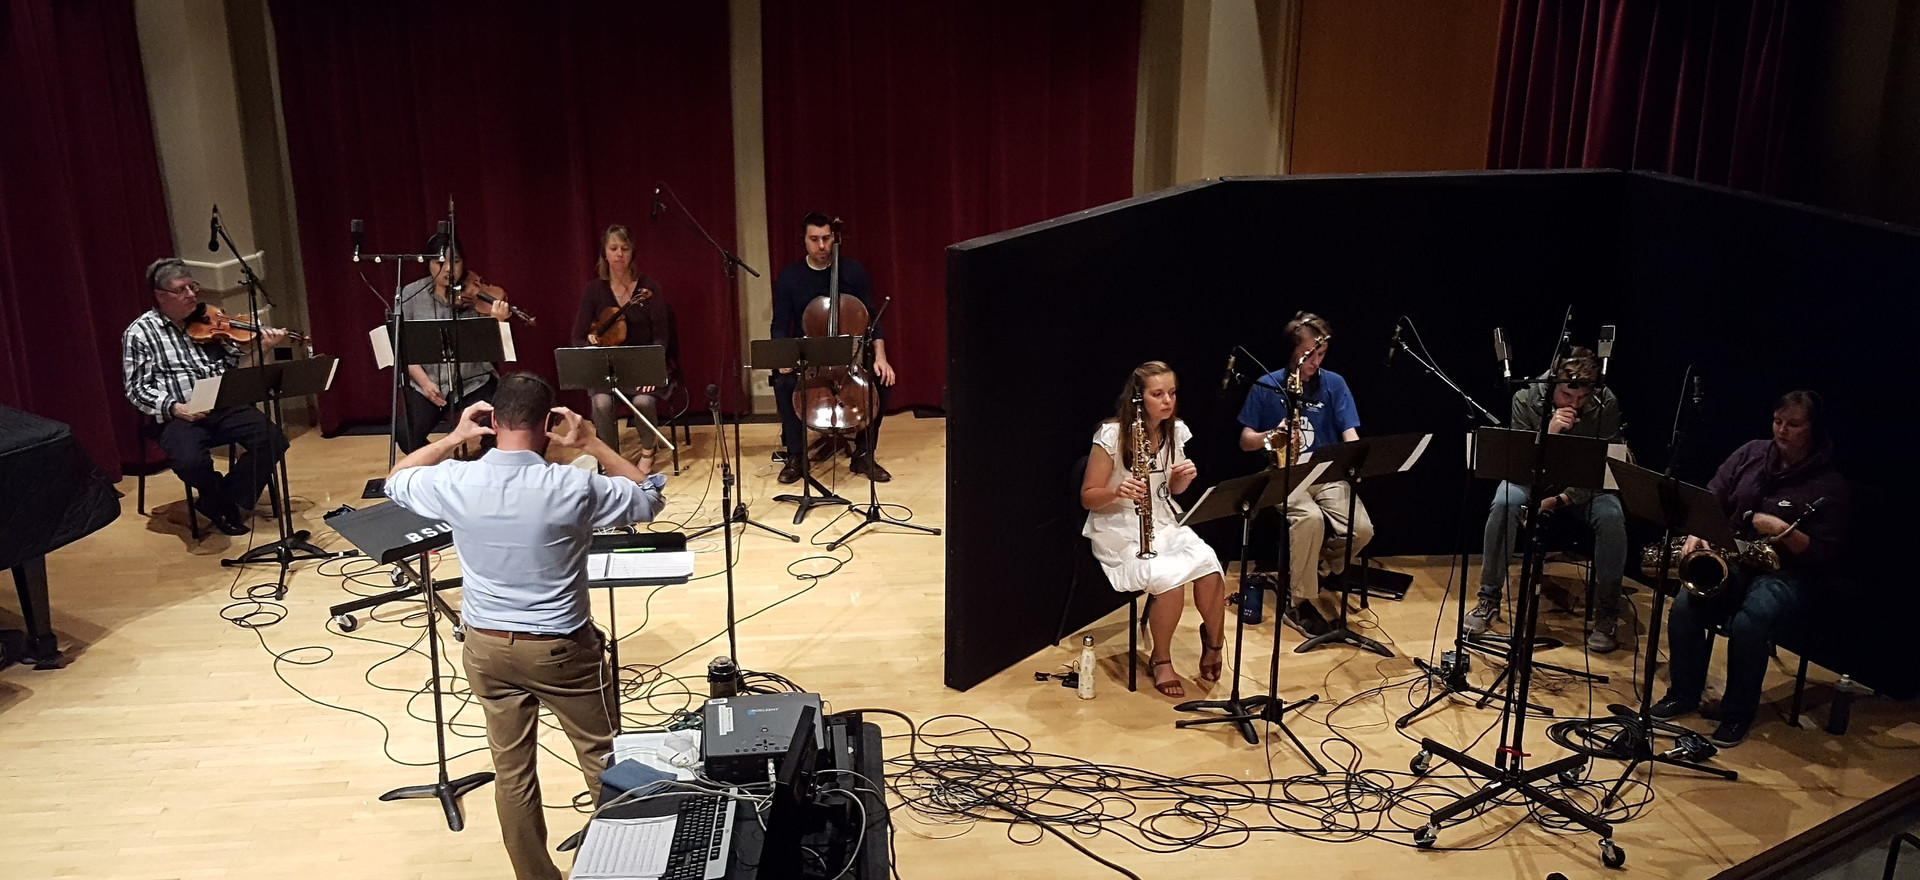 Recording session with students and faculty at Boise State